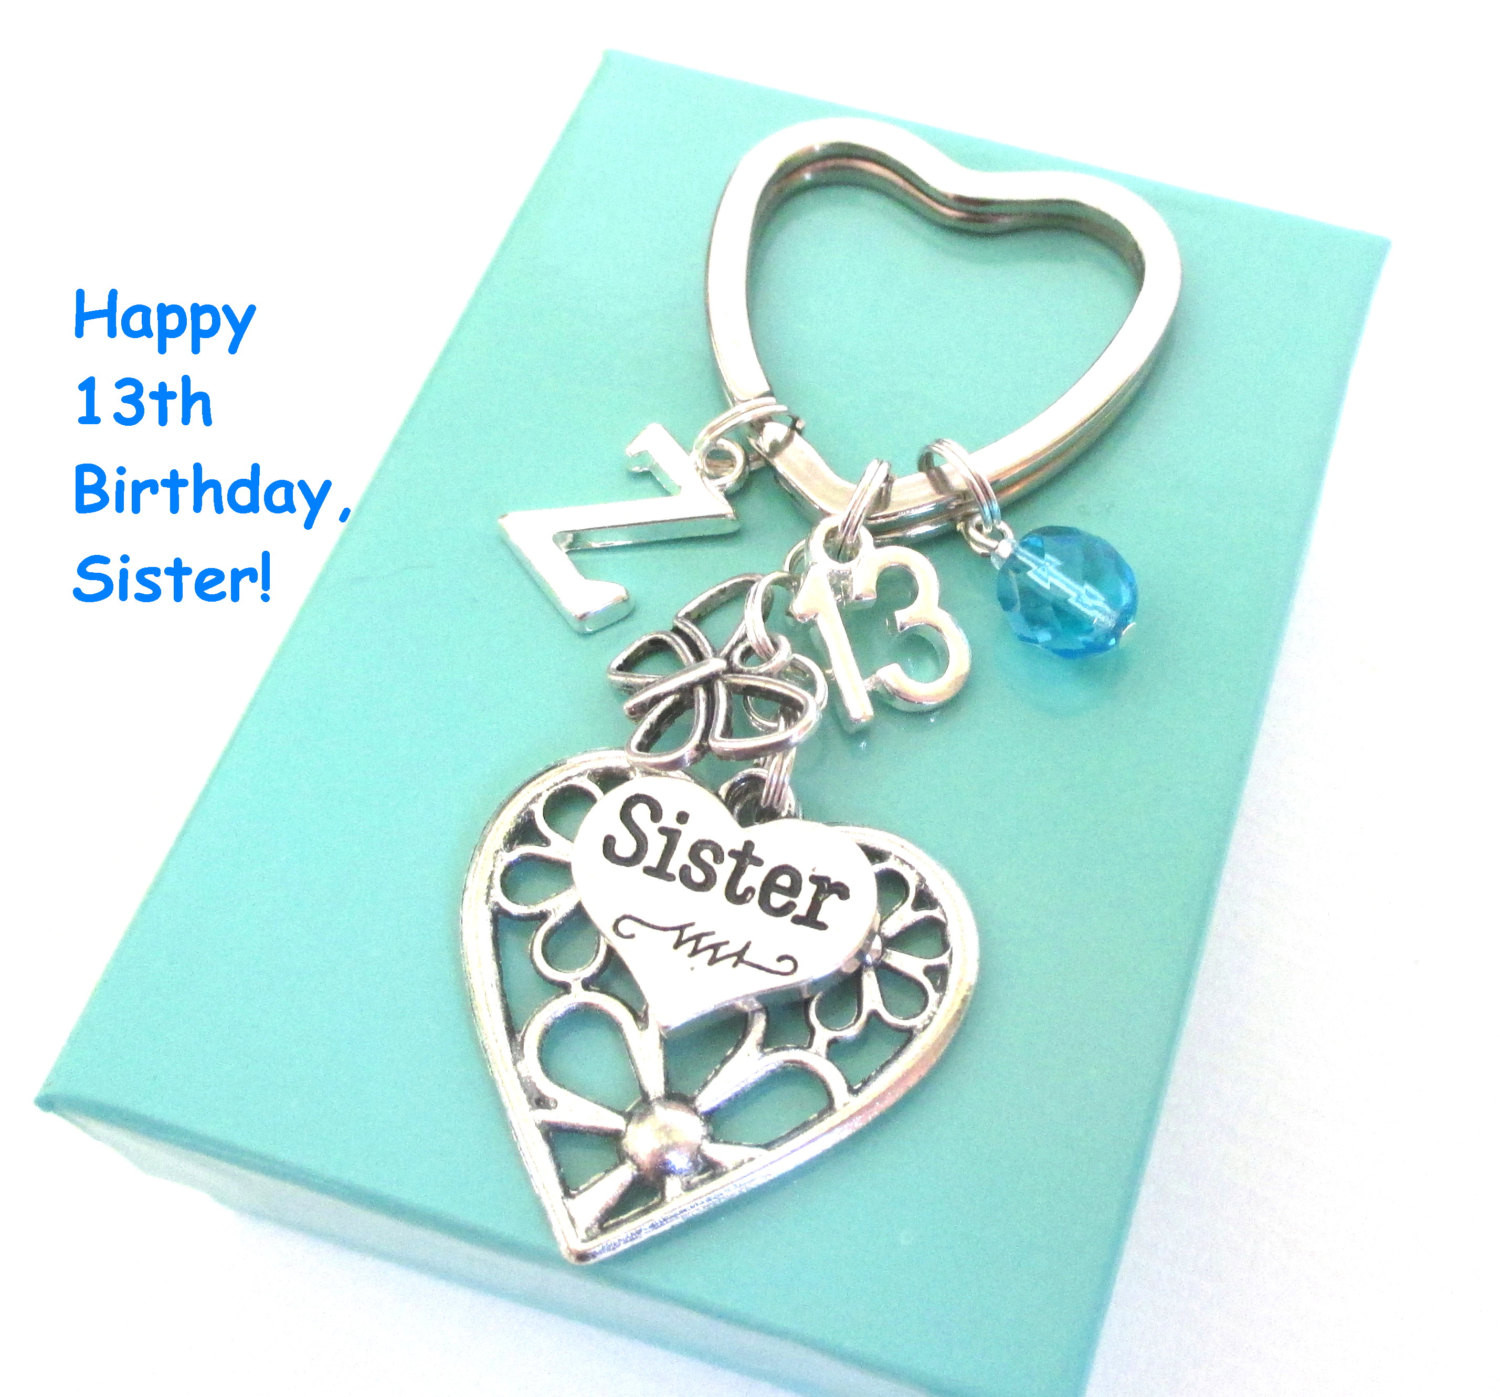 Best ideas about 13th Birthday Gifts . Save or Pin 13th birthday t for Sister Personalised by DoodlepopDesigns Now.